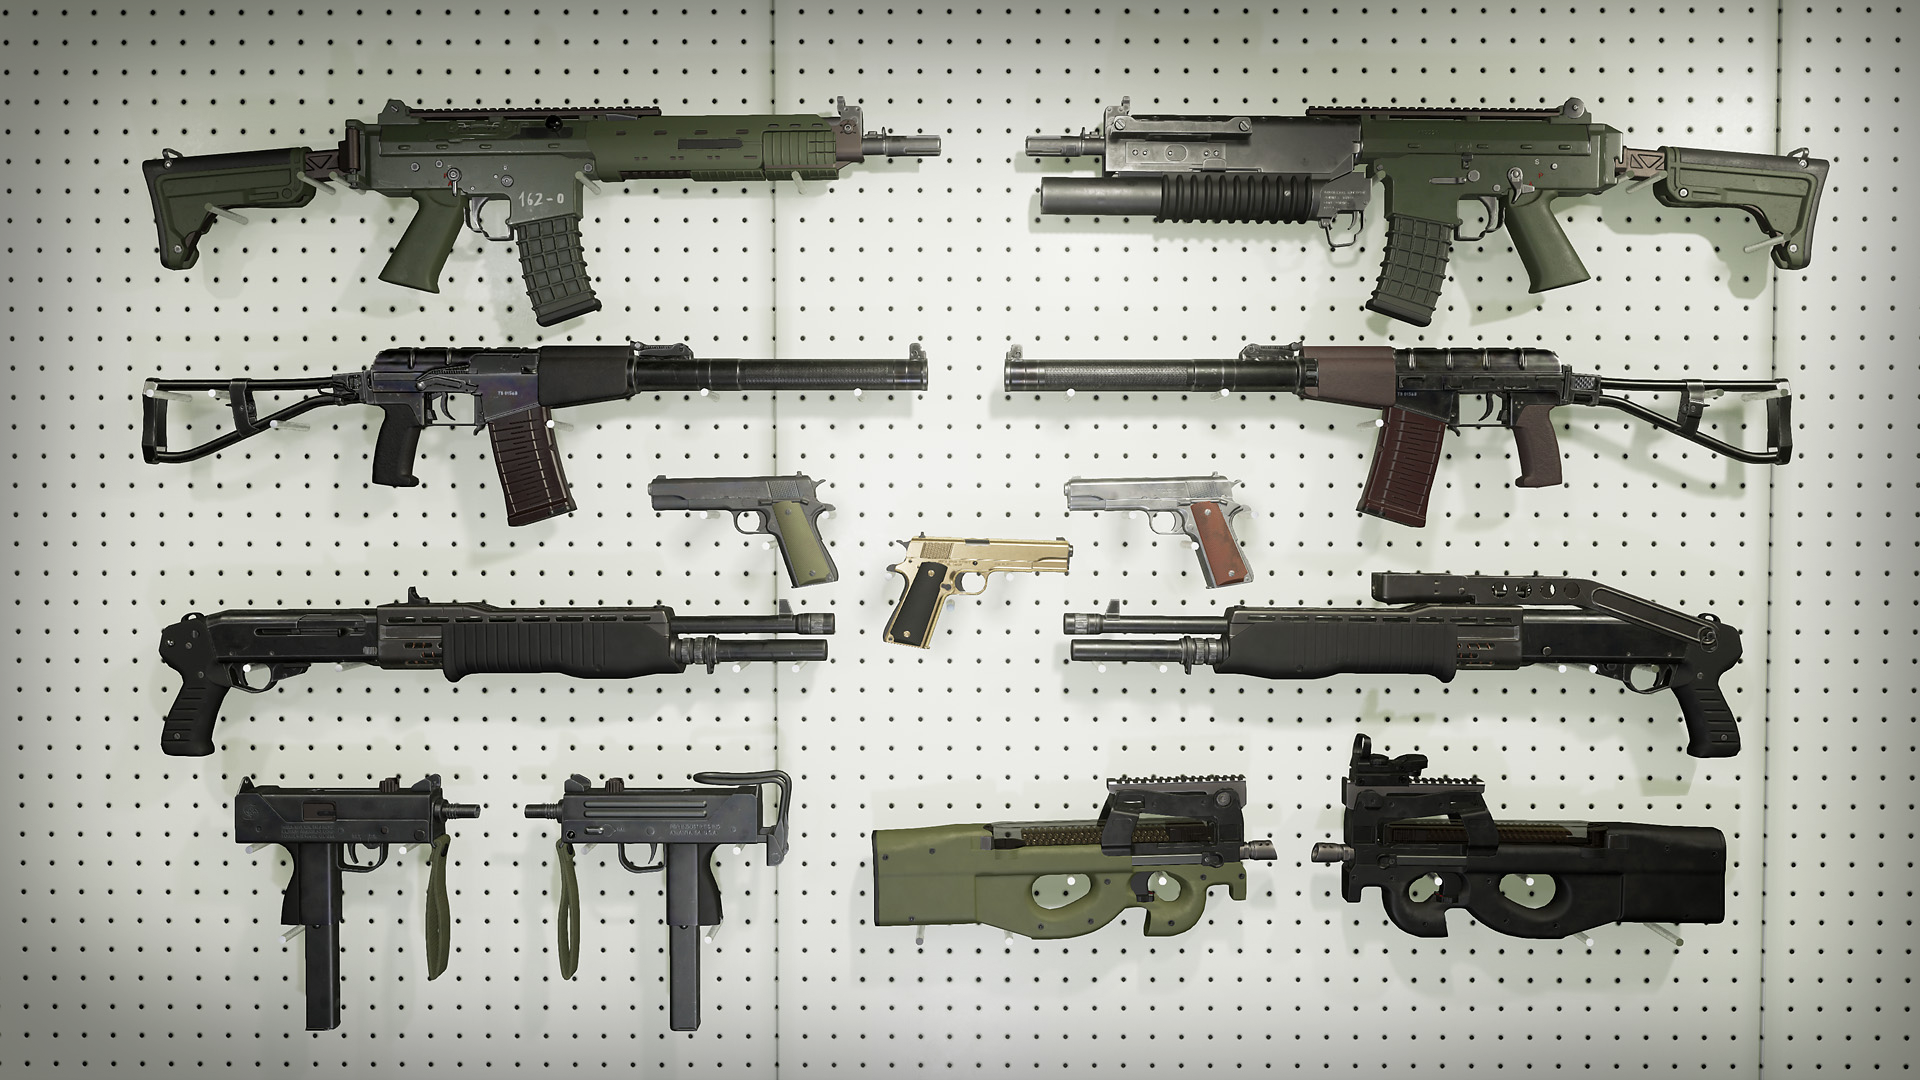 FPS Weapon Pack Vol 2 by Deadghost Interactive in Weapons - UE4